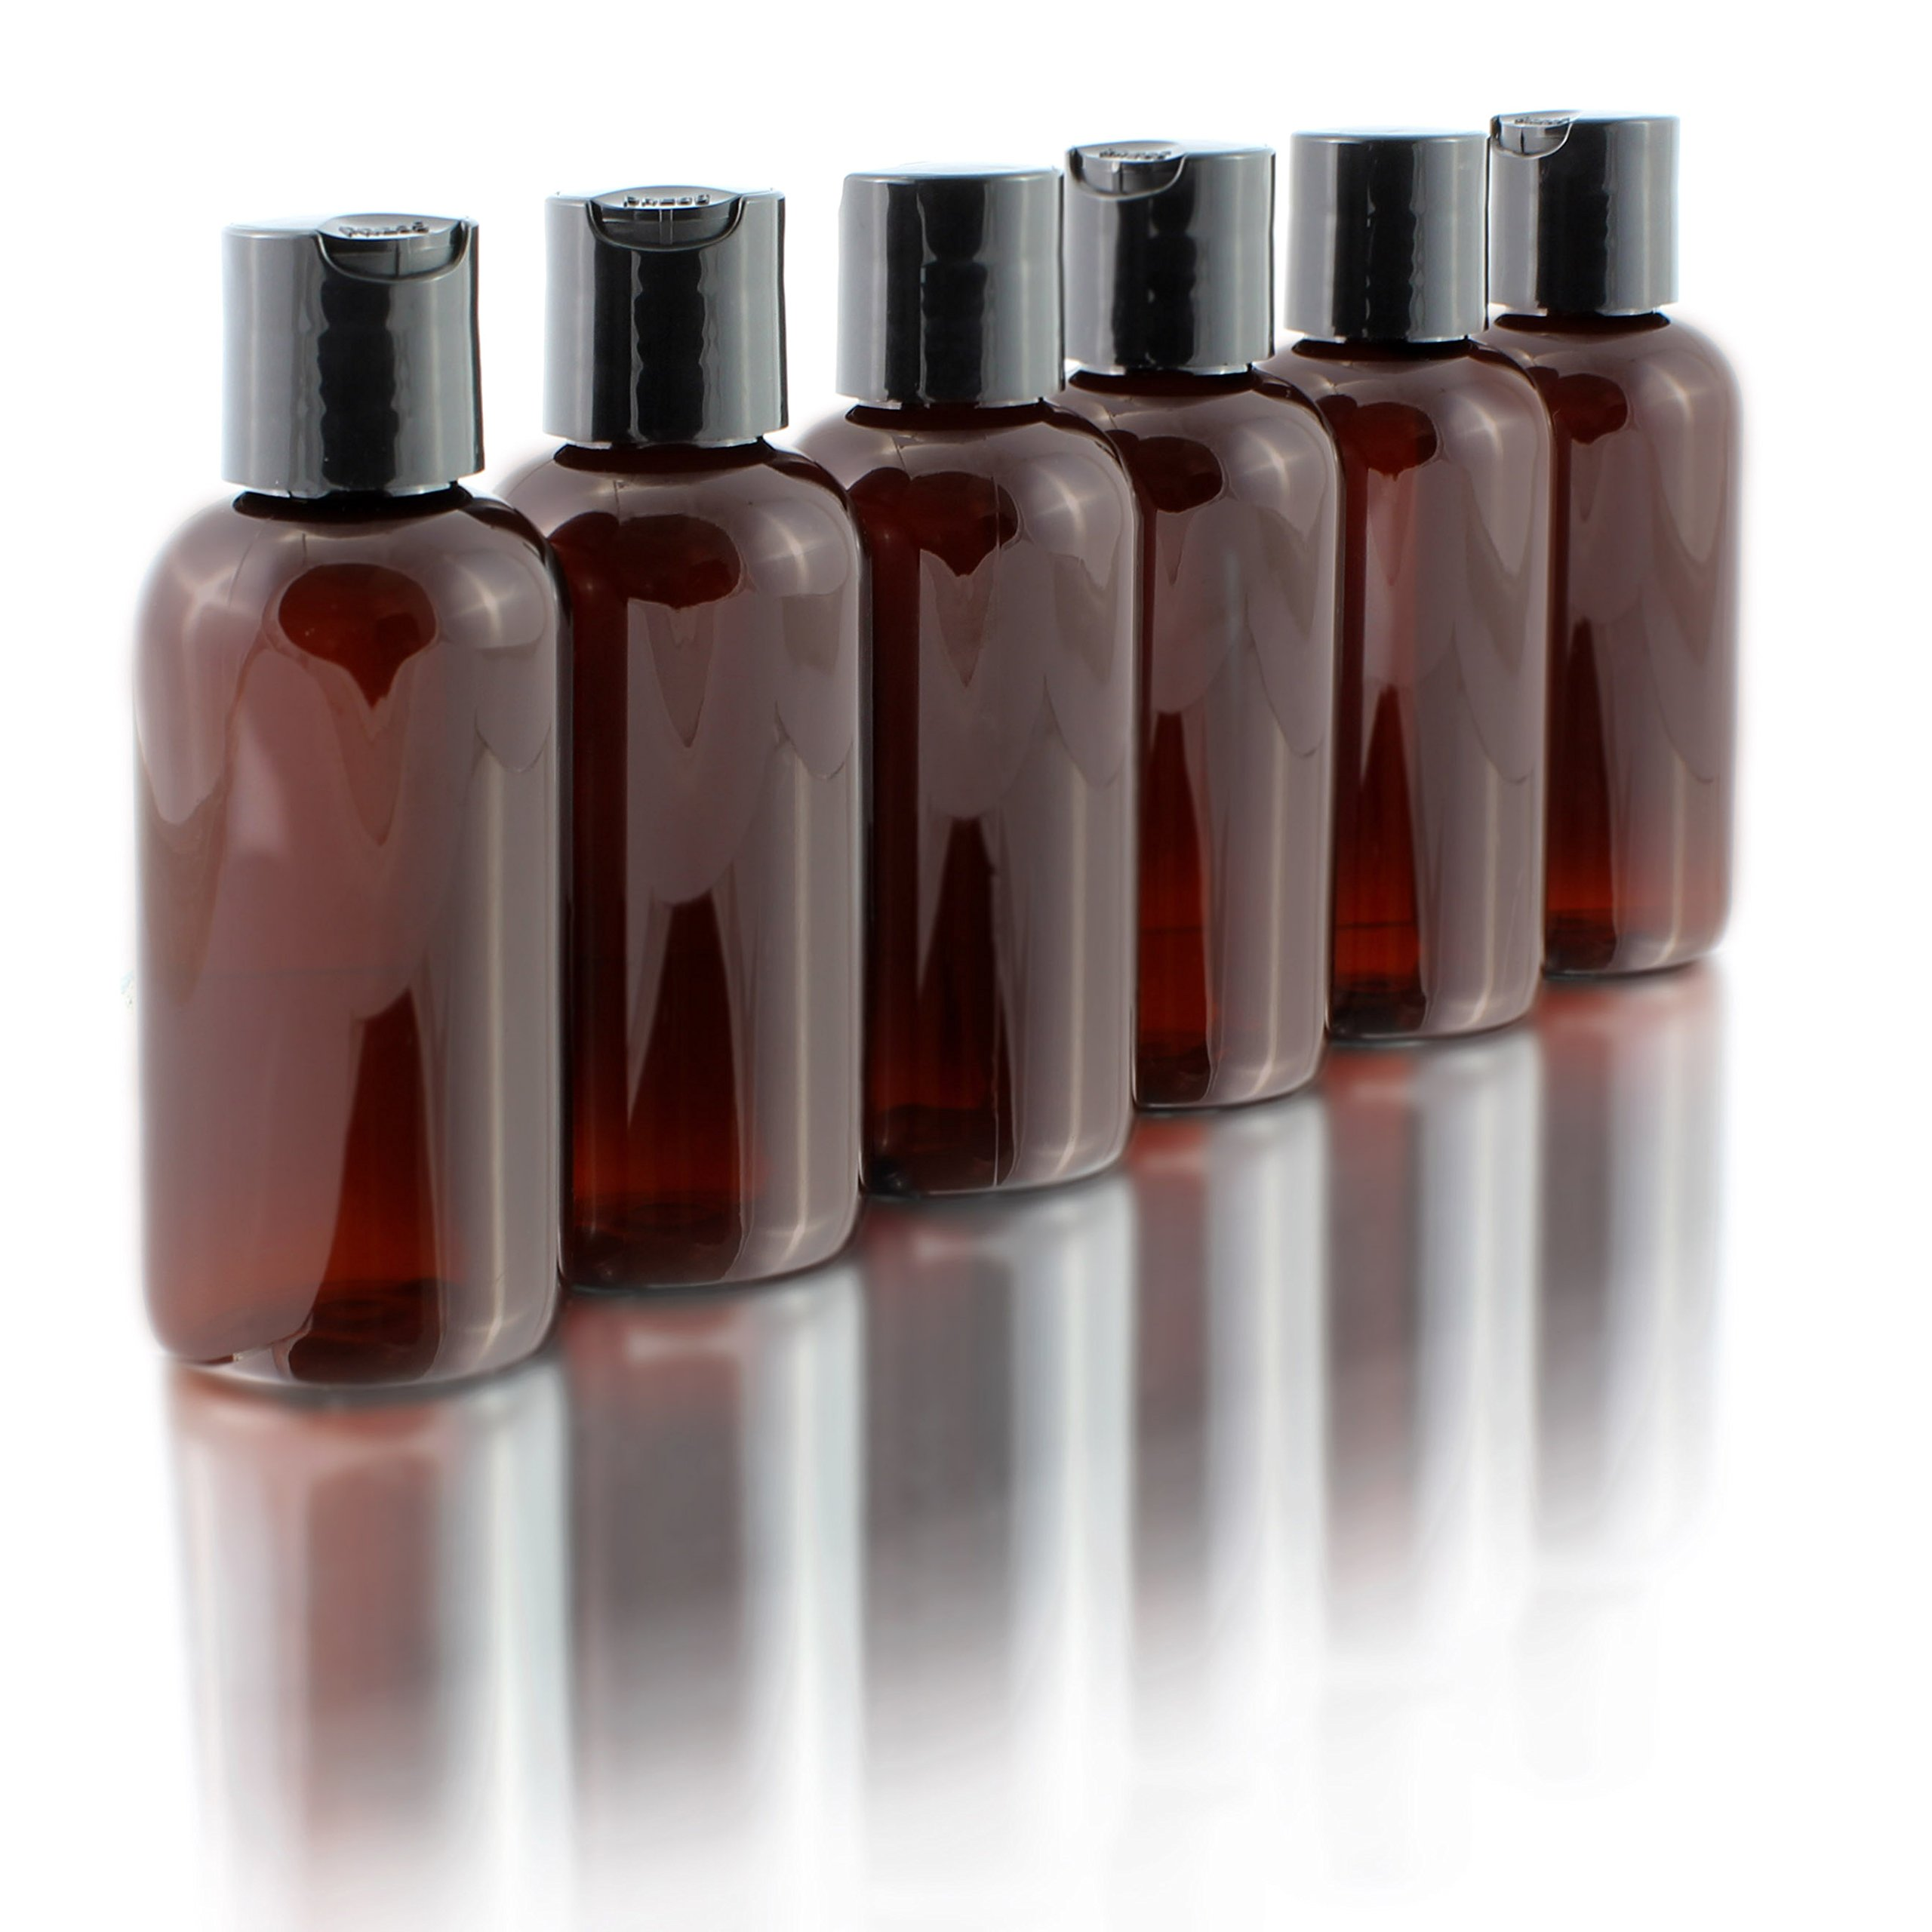 4oz Empty Amber Brown Plastic Squeeze Bottles with Disc Top Flip Cap (6 pack); BPA-Free Containers For Shampoo, Lotions, Liquid Body Soap, Creams (4 ounce, Amber Brown)